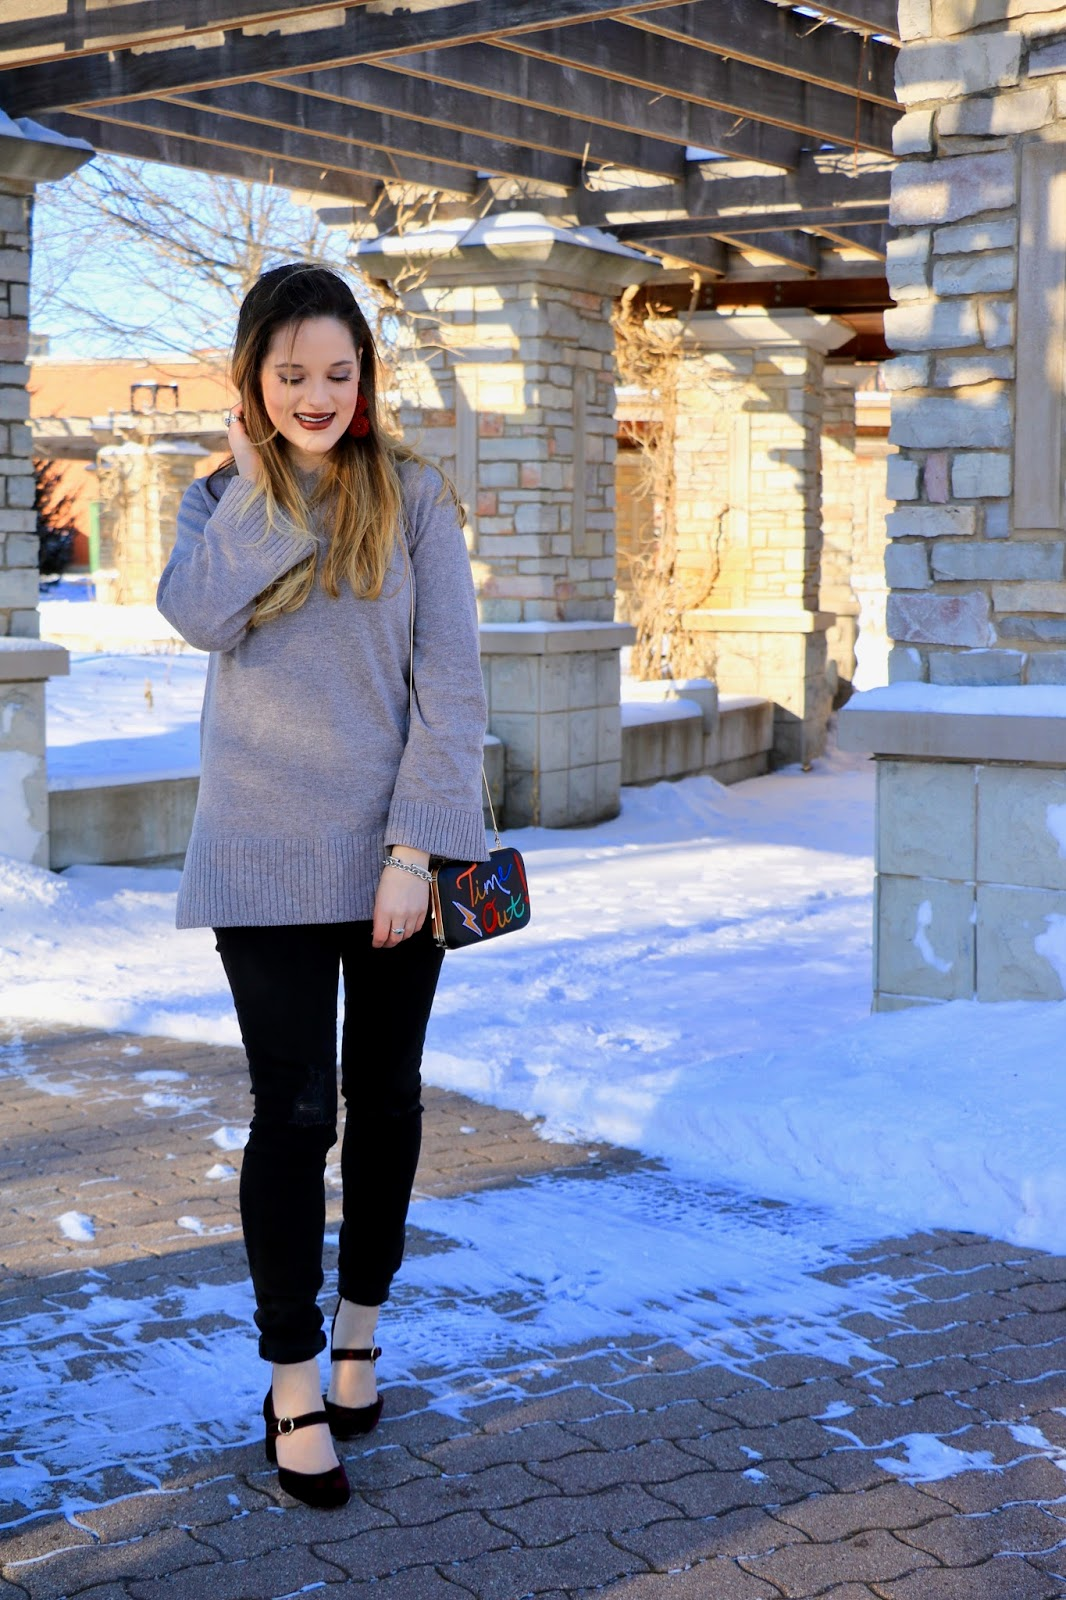 Nyc fashion blogger Kathleen Harper wearing a winter, cold-weather outfit